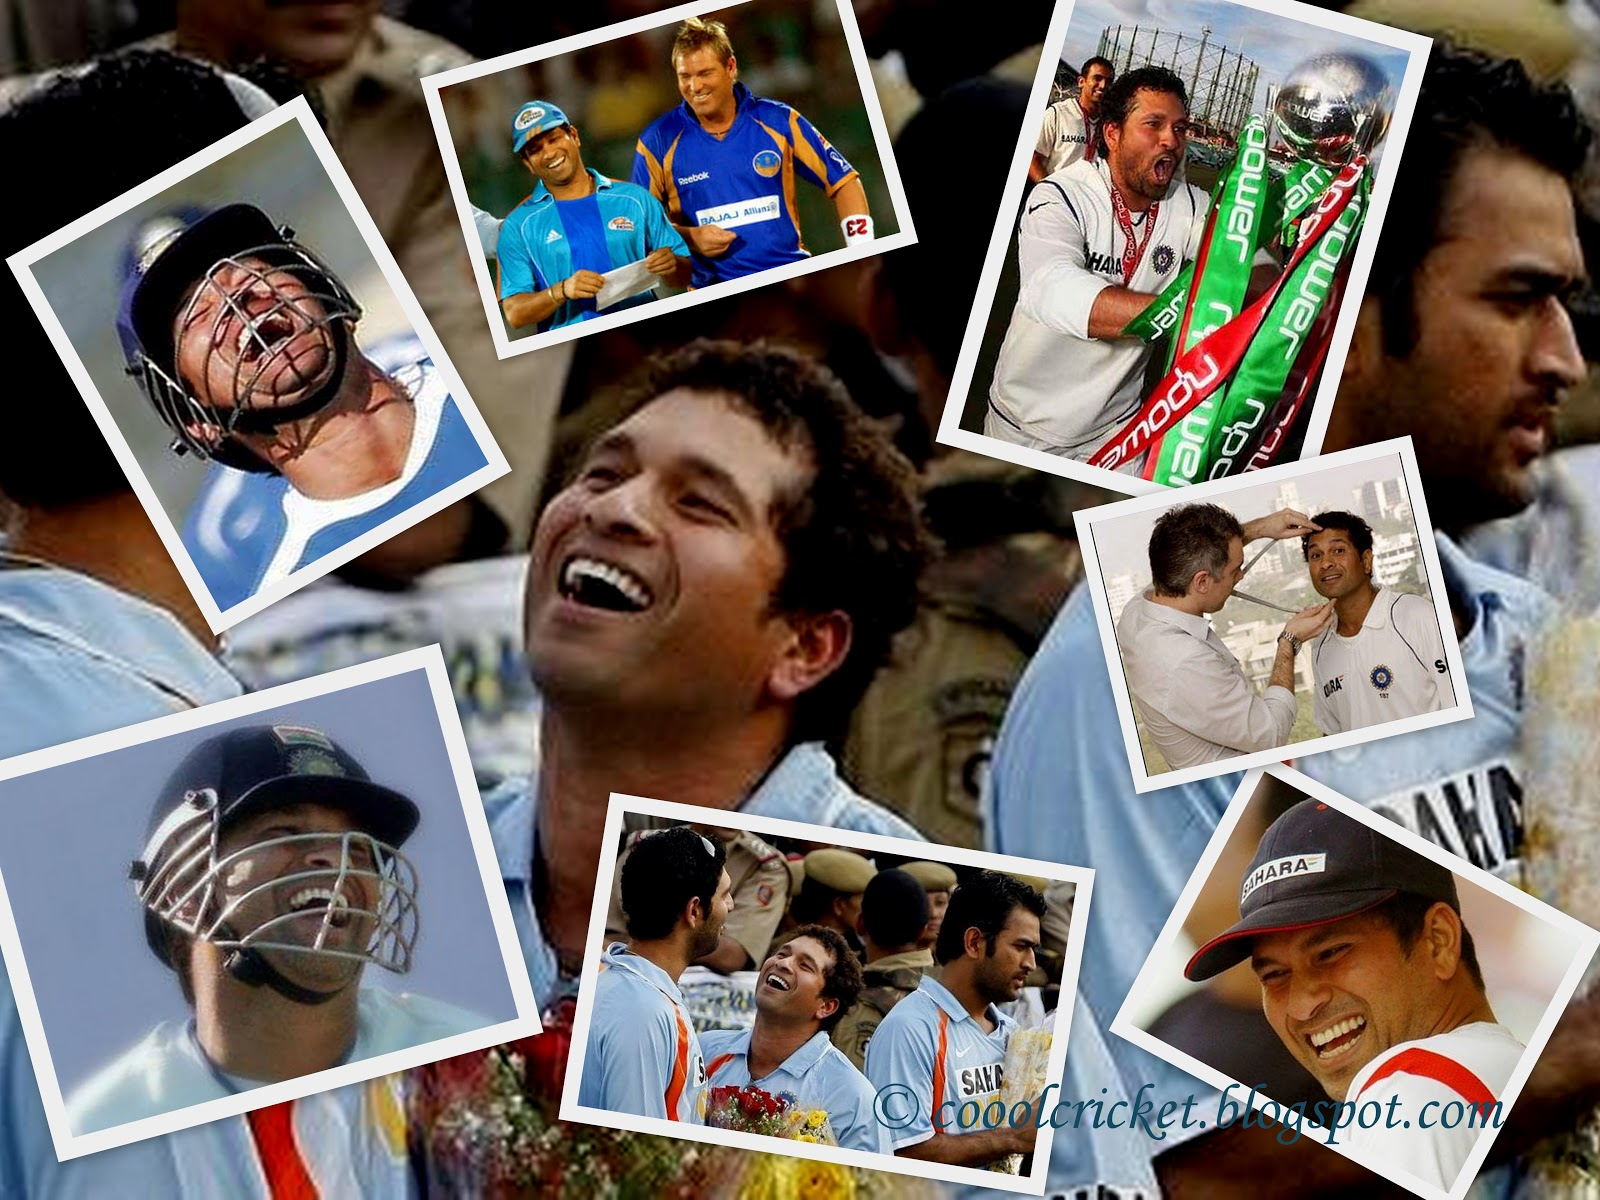 Wallpaper of Sachin's Childhood Memories